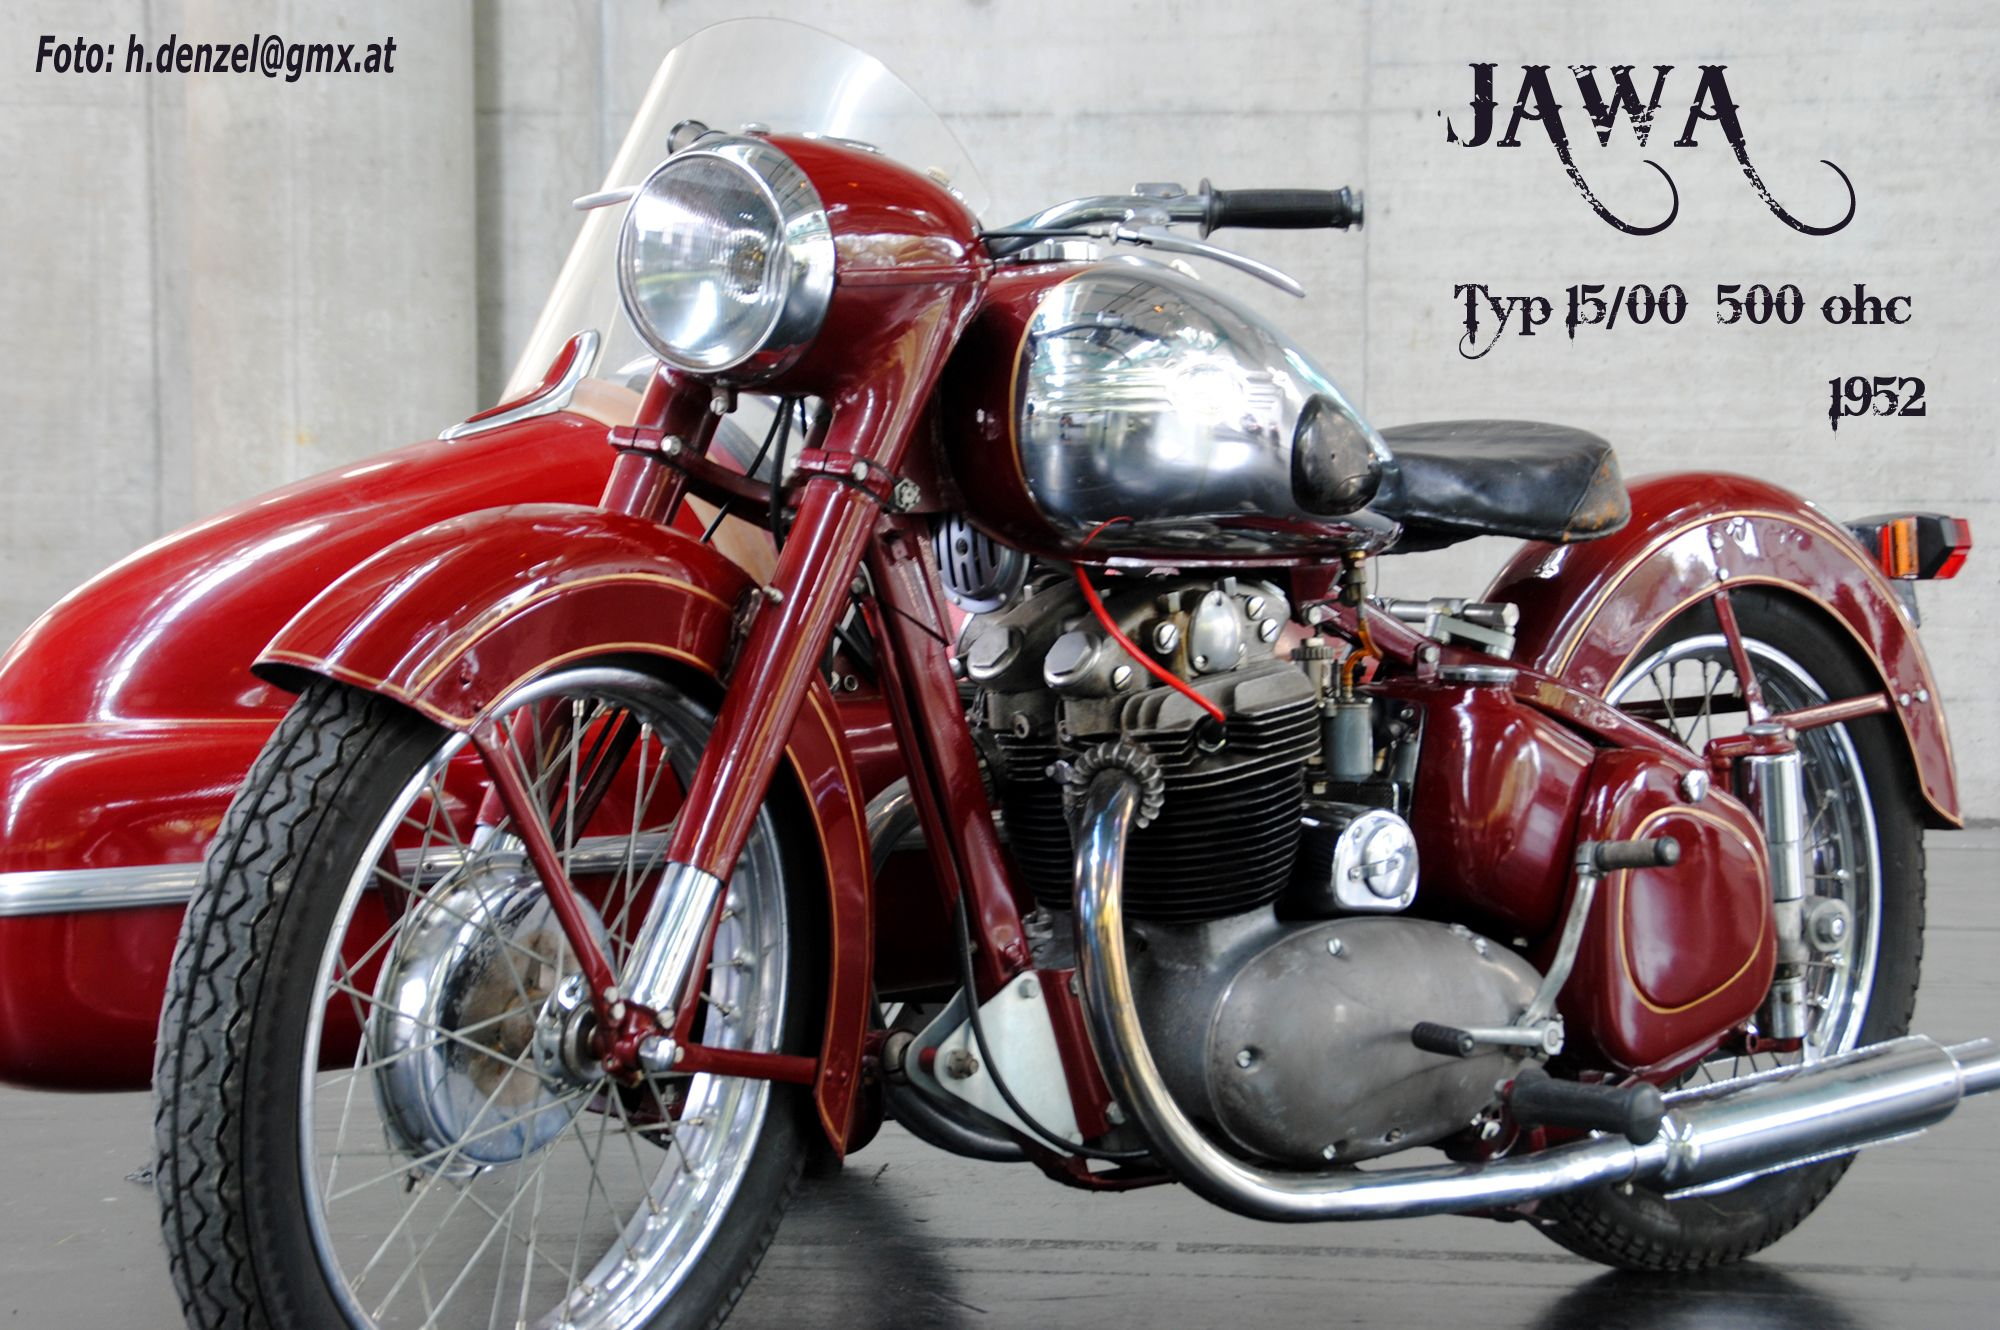 Jawa Typ 15 00 500ohc 1952 Classic Motorcycles Motorcycle